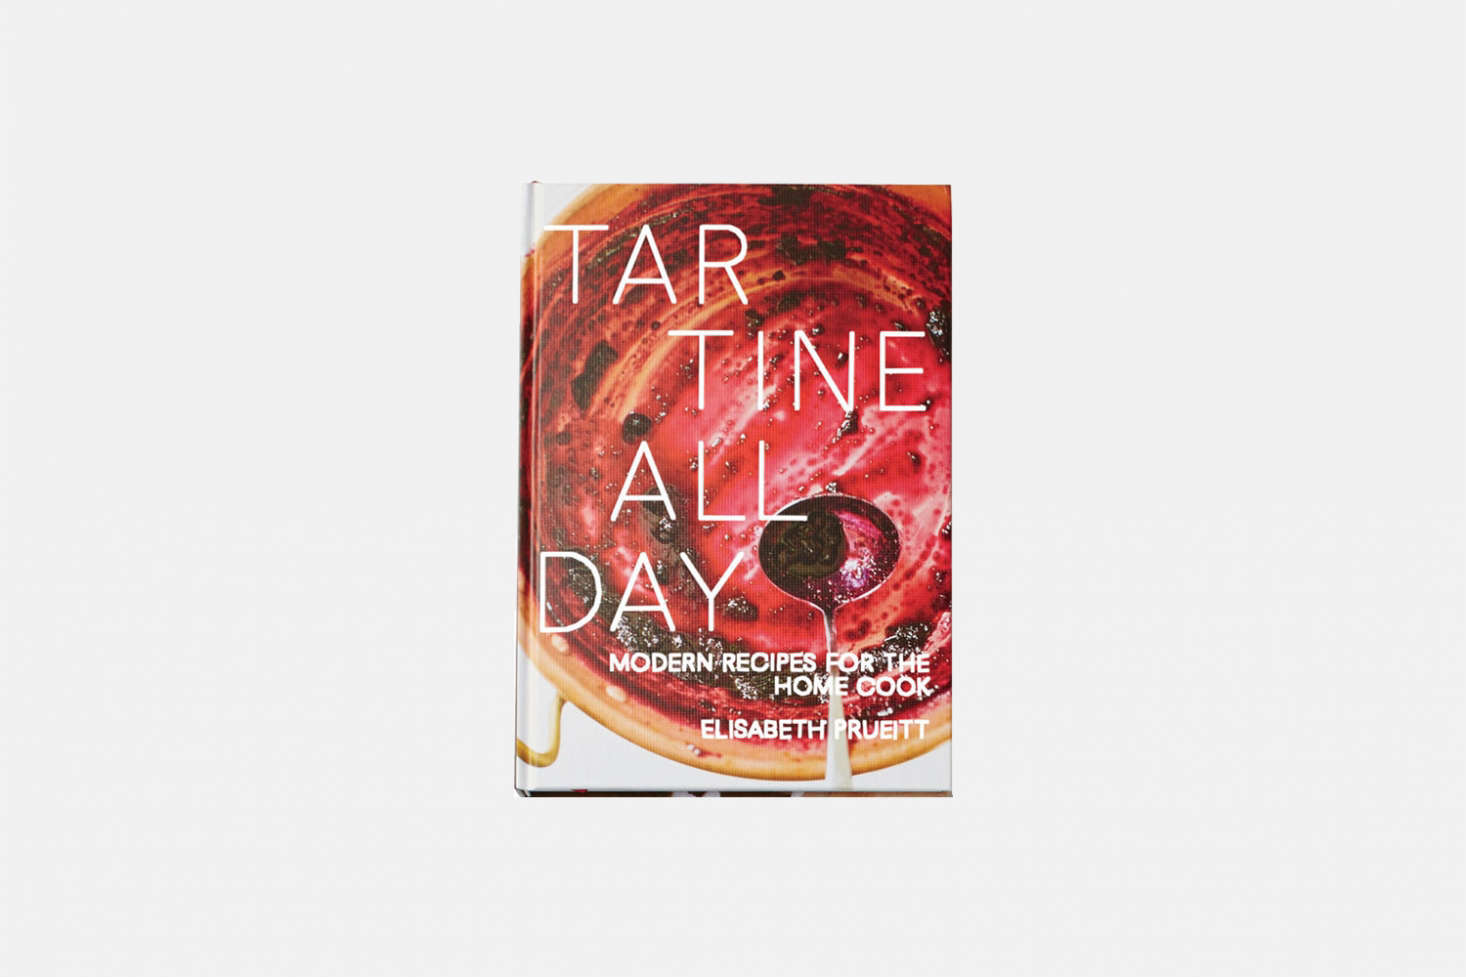 San Francisco mainstay Tartine refocuses on the home-cooked meal in Tartine All Day: Modern Recipes for the Home Cook ($27.19). The 200 recipes on offer are more straightforward and approachable than the Tartine cookbooks of the past (though we love those too).